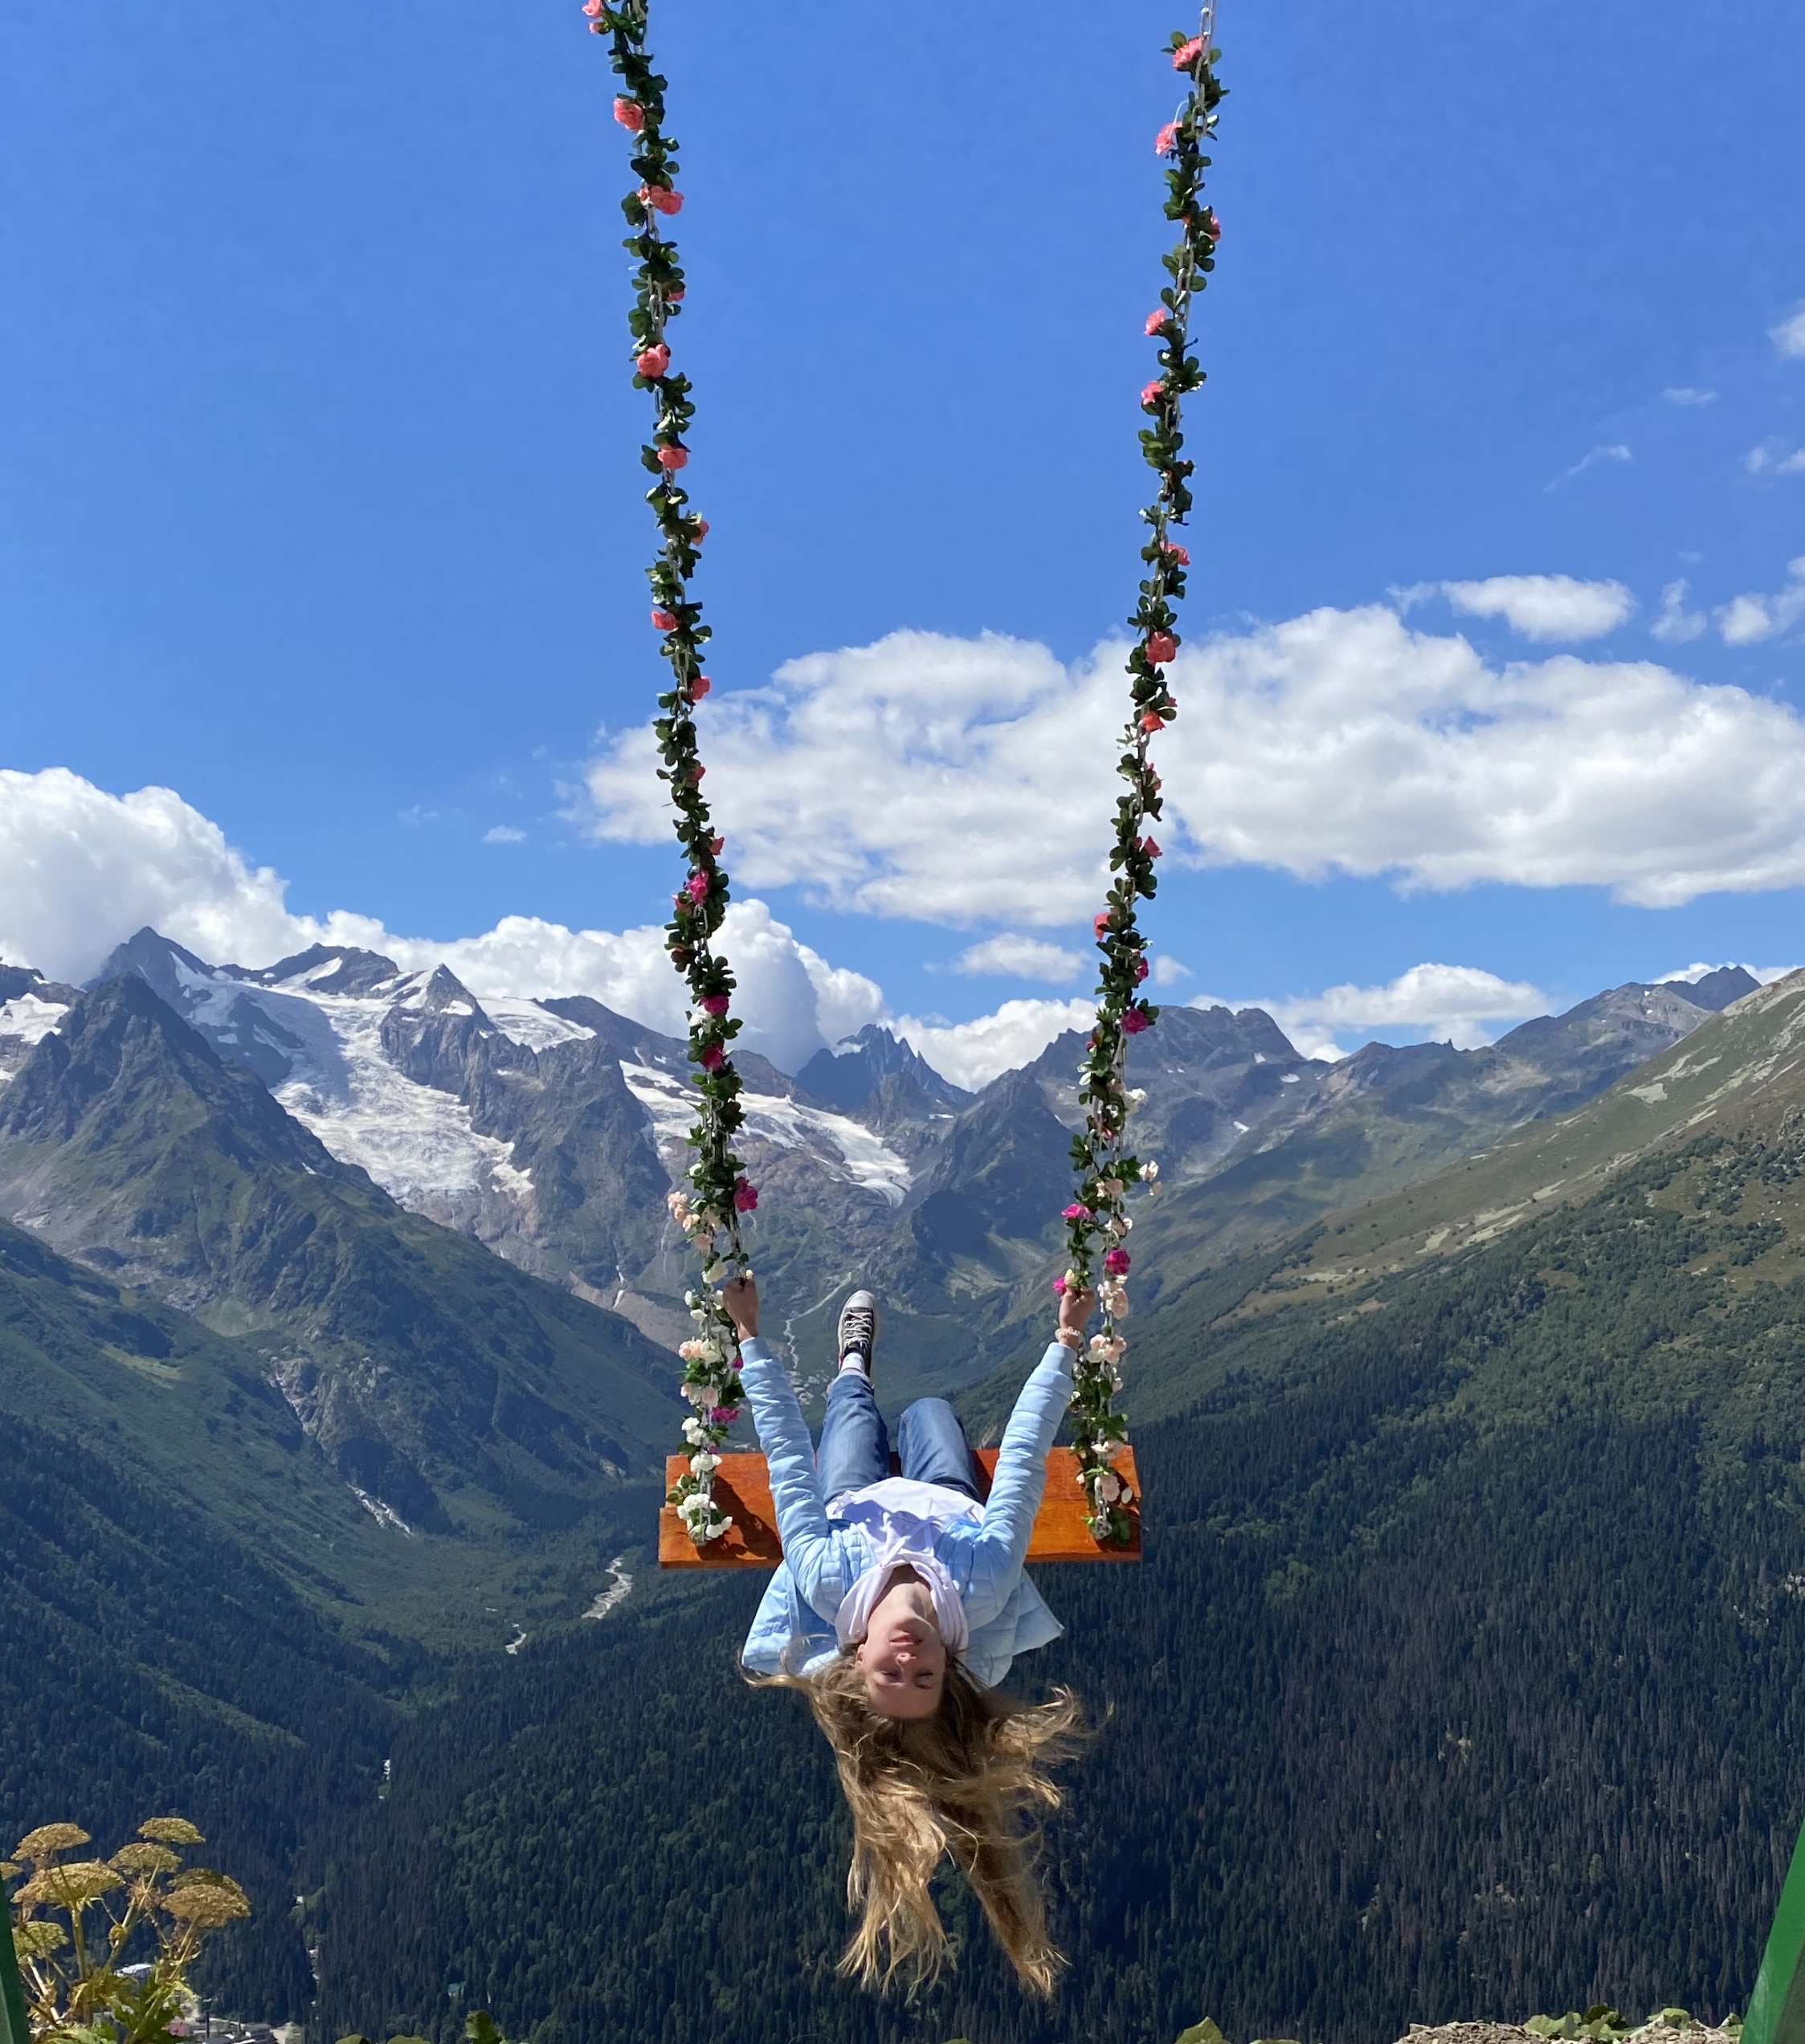 a girl on a swing seems suspended over a valley